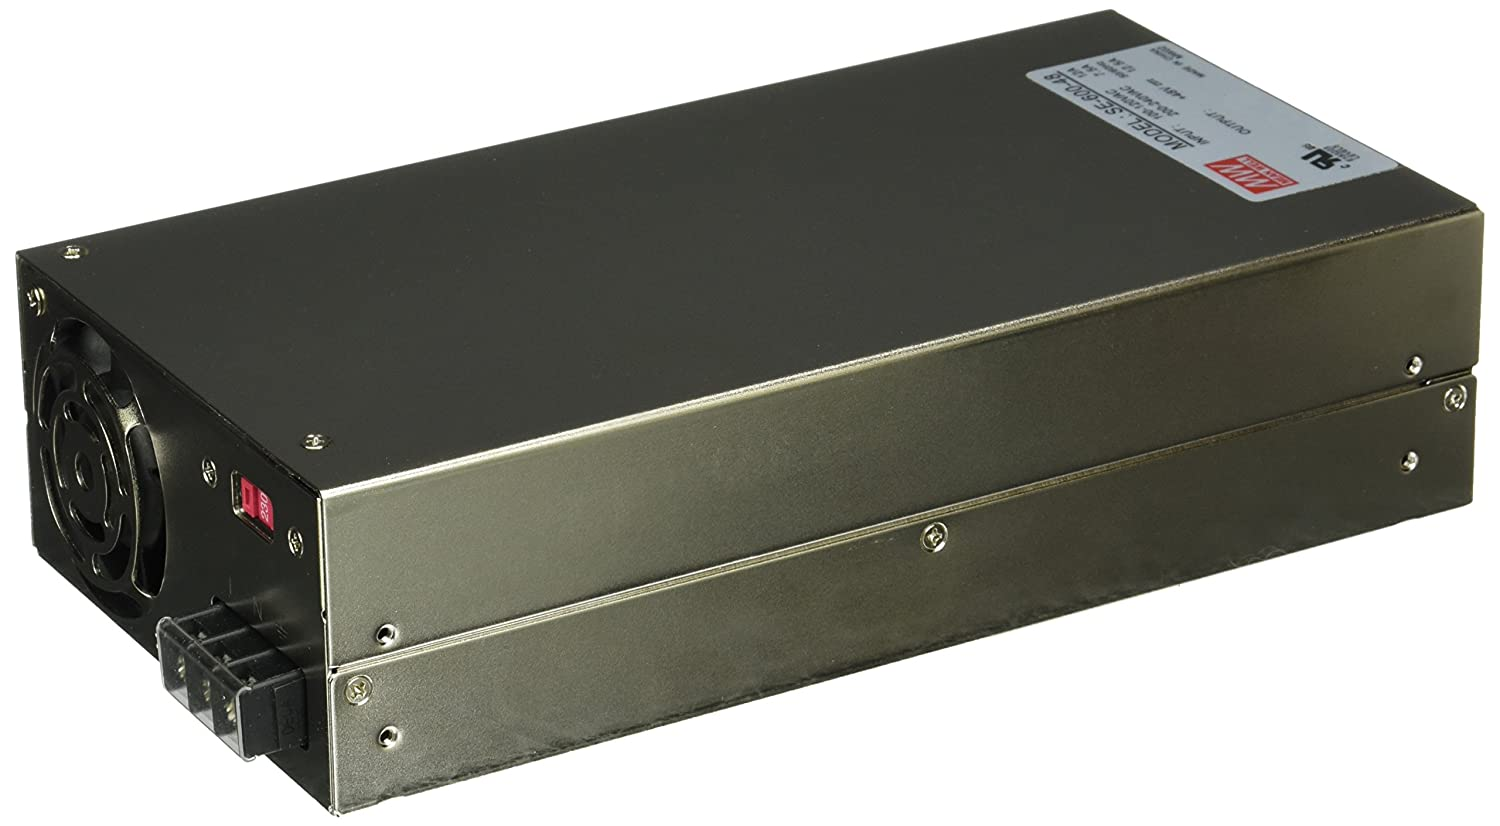 Amazon.com: MEAN WELL SE-600-48 AC to DC Power Supply, Single Output ...